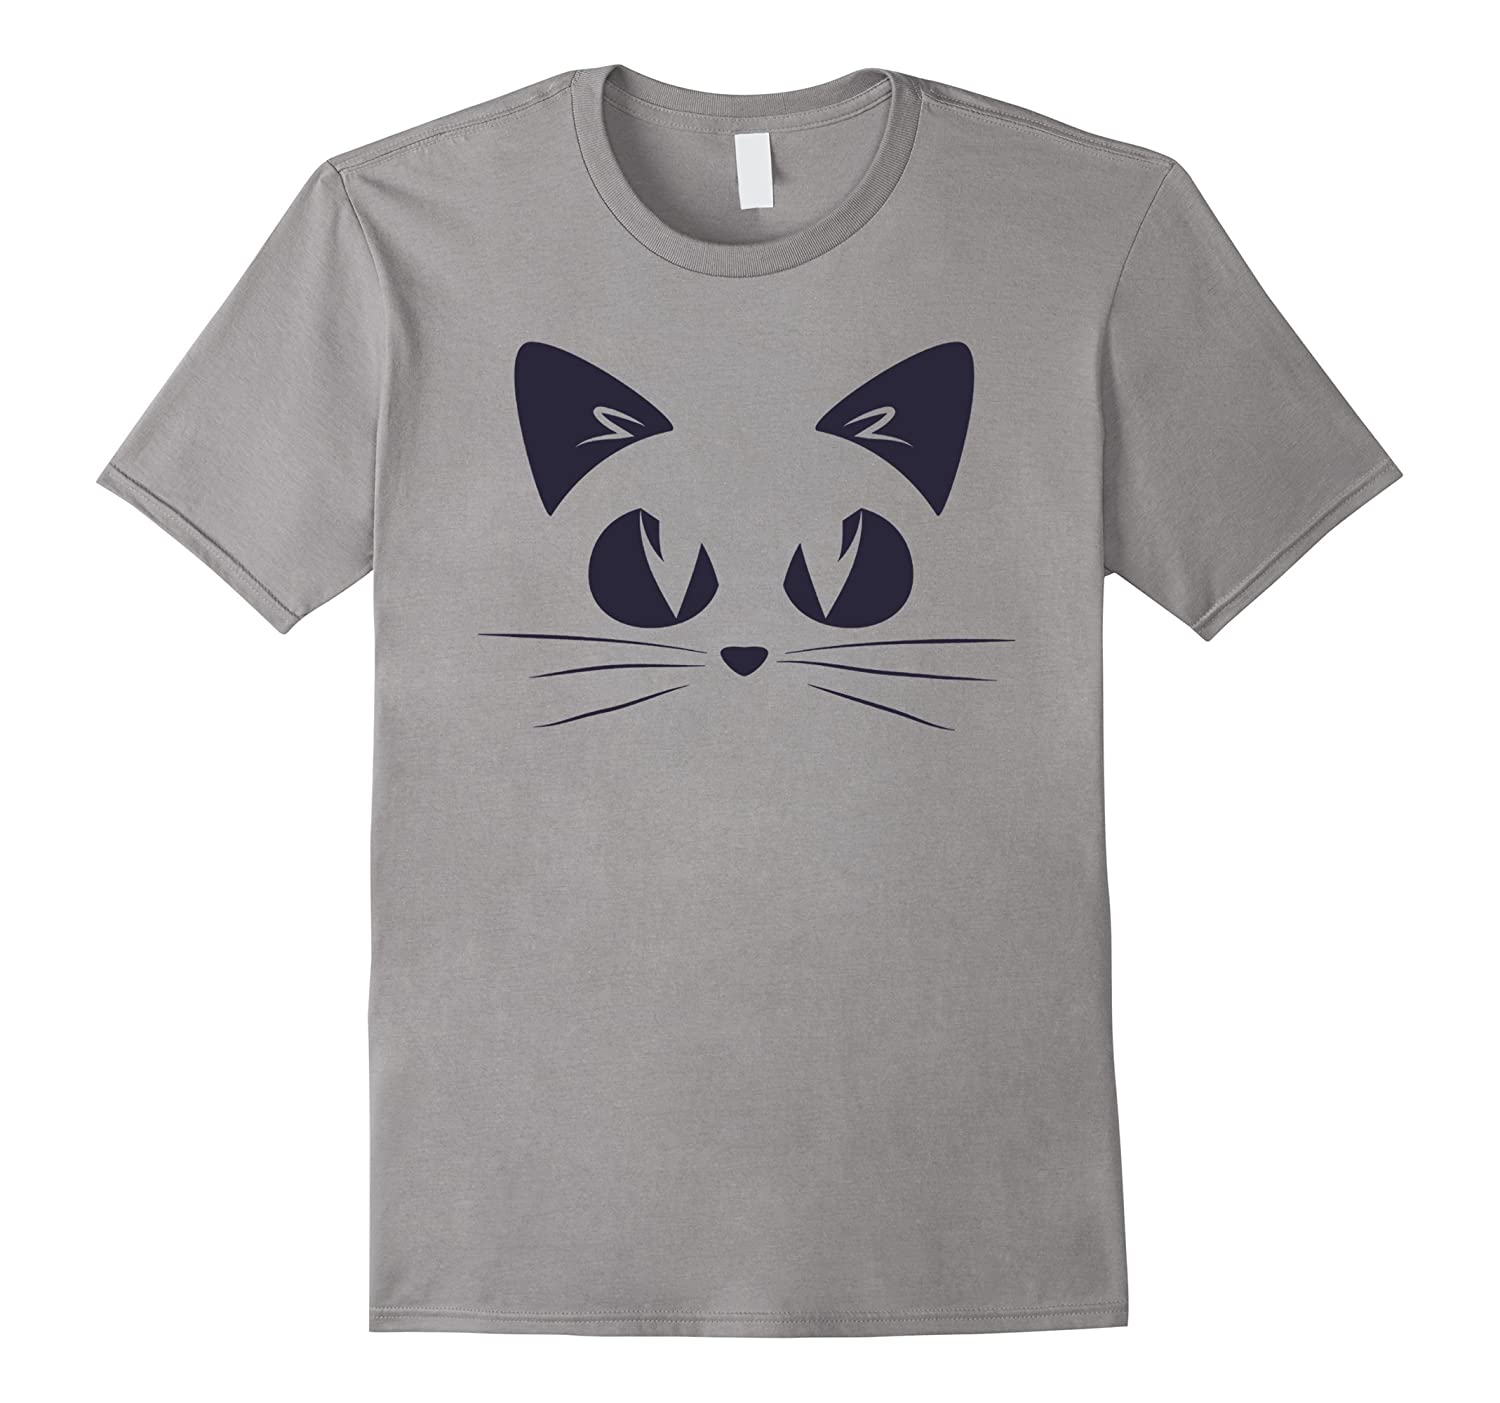 Cute Cat T-shirt Cool Funny Halloween Costume Unisex Top Tee-FL